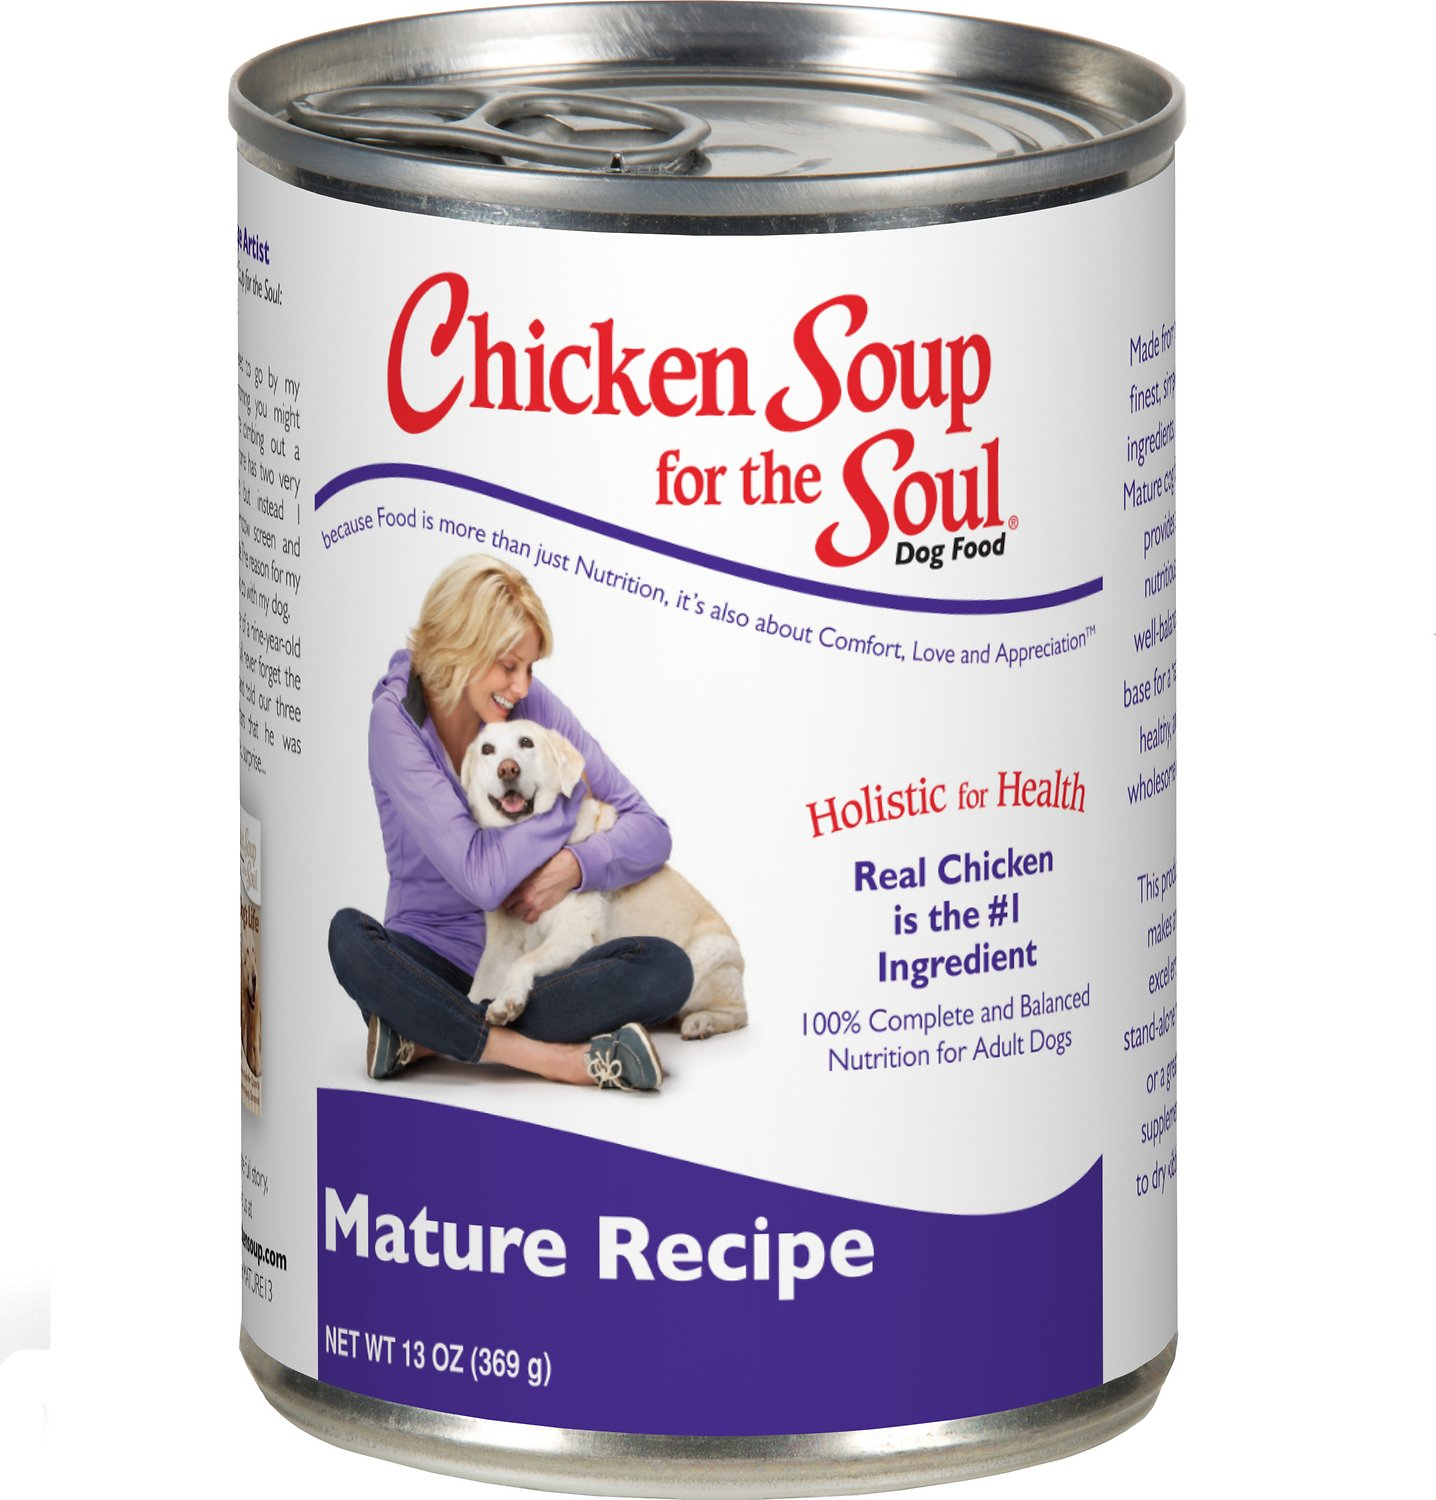 Chicken Soup for the Soul Mature Canned Dog Food